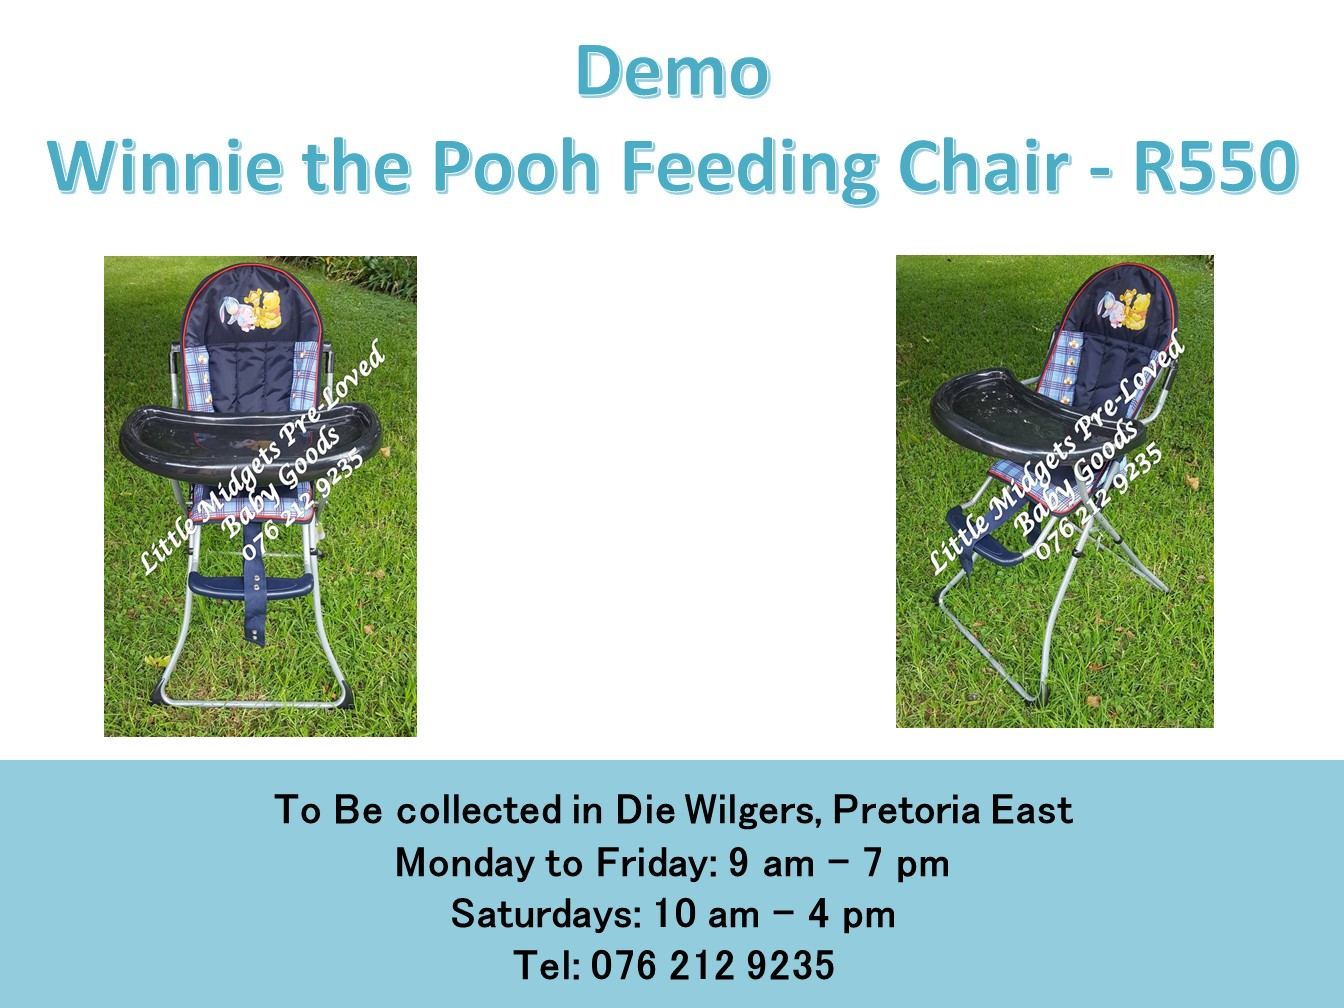 Demo Winnie the Pooh Feeding Chair